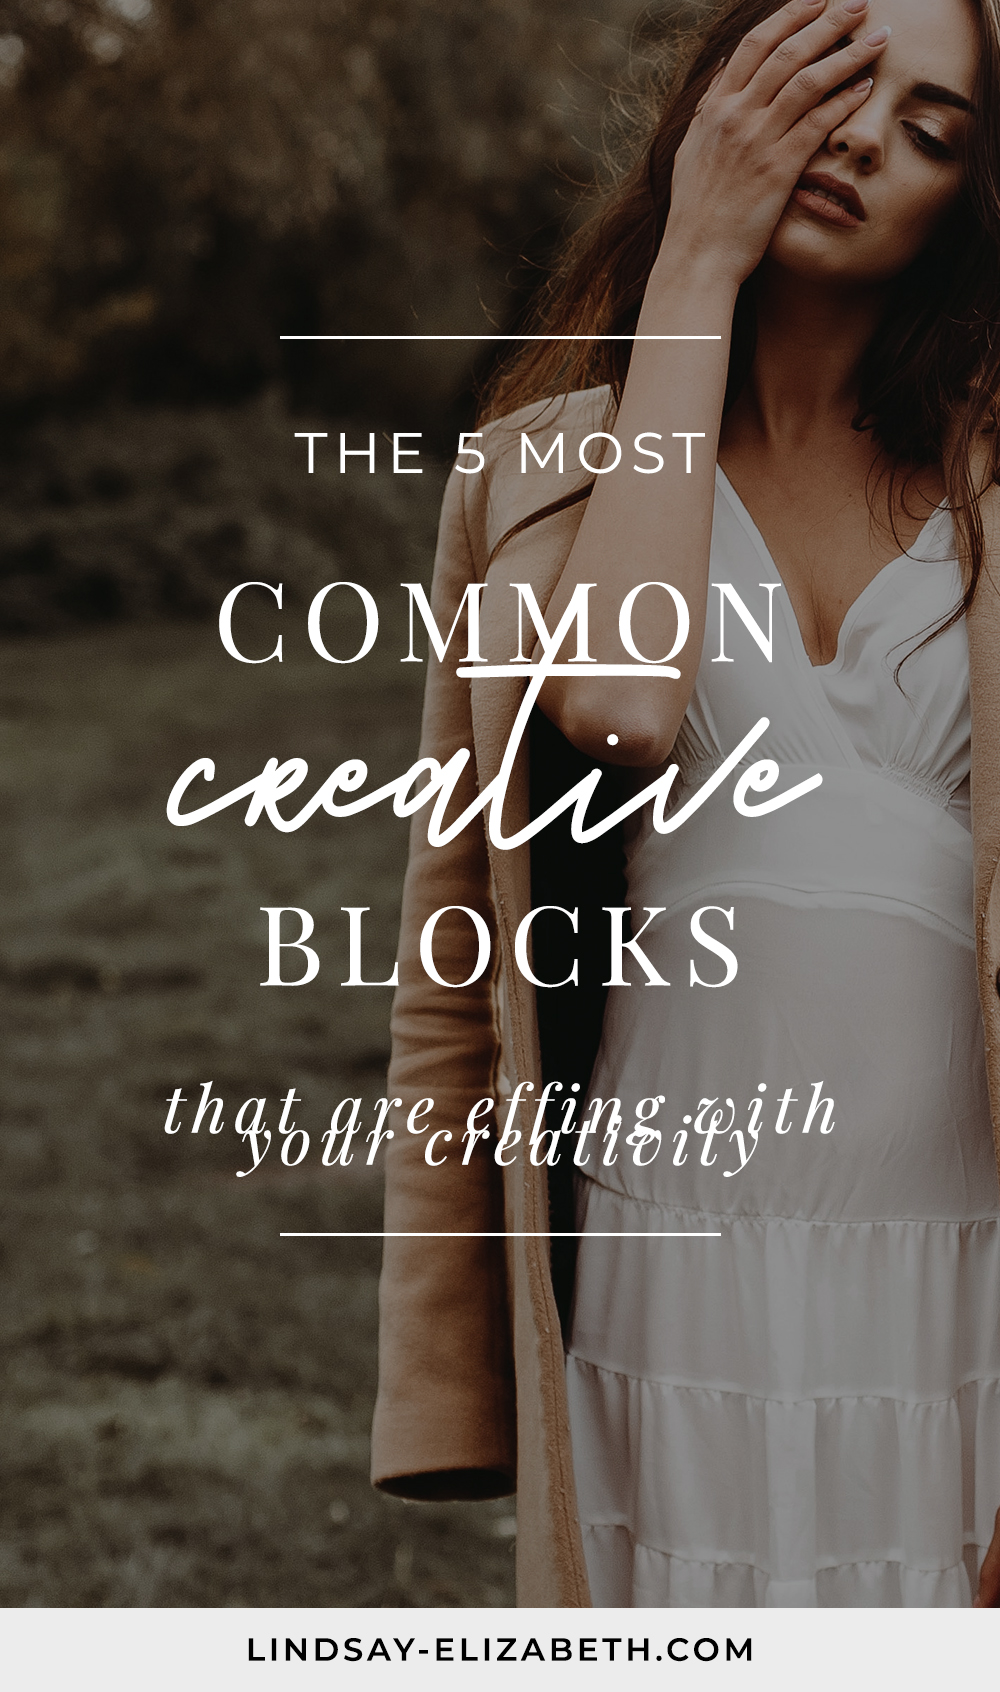 Do you struggle with creative blocks? Are you trying to write a book, open a blog, start a business, or tap into your creativity in some way, but you just can't seem to stay focused and connect? Identifying the block is the first step to freeing yourself from it. Learn what the 5 most common creative blocks are so you can stop being a slave to them and start dealing with them head-on.